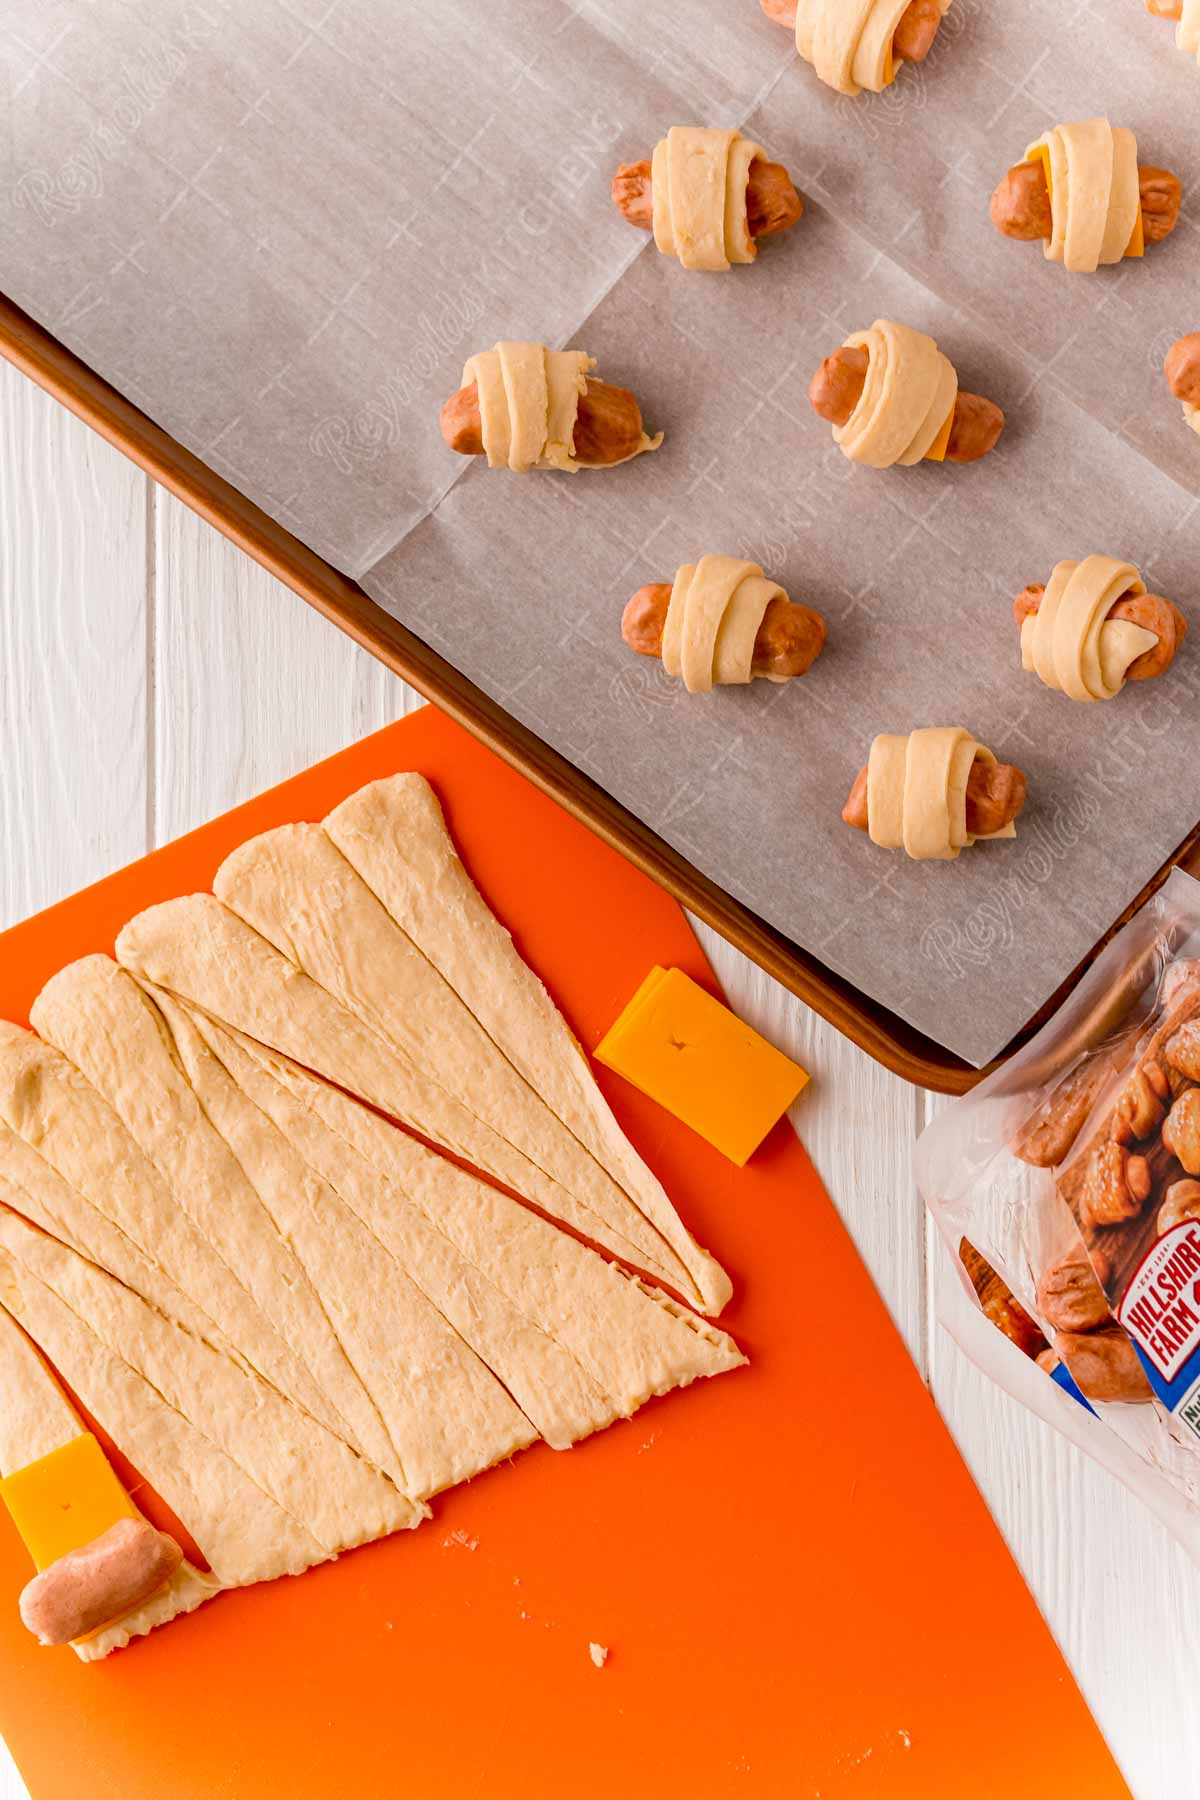 Crescent rolls cut into long skinny triangles